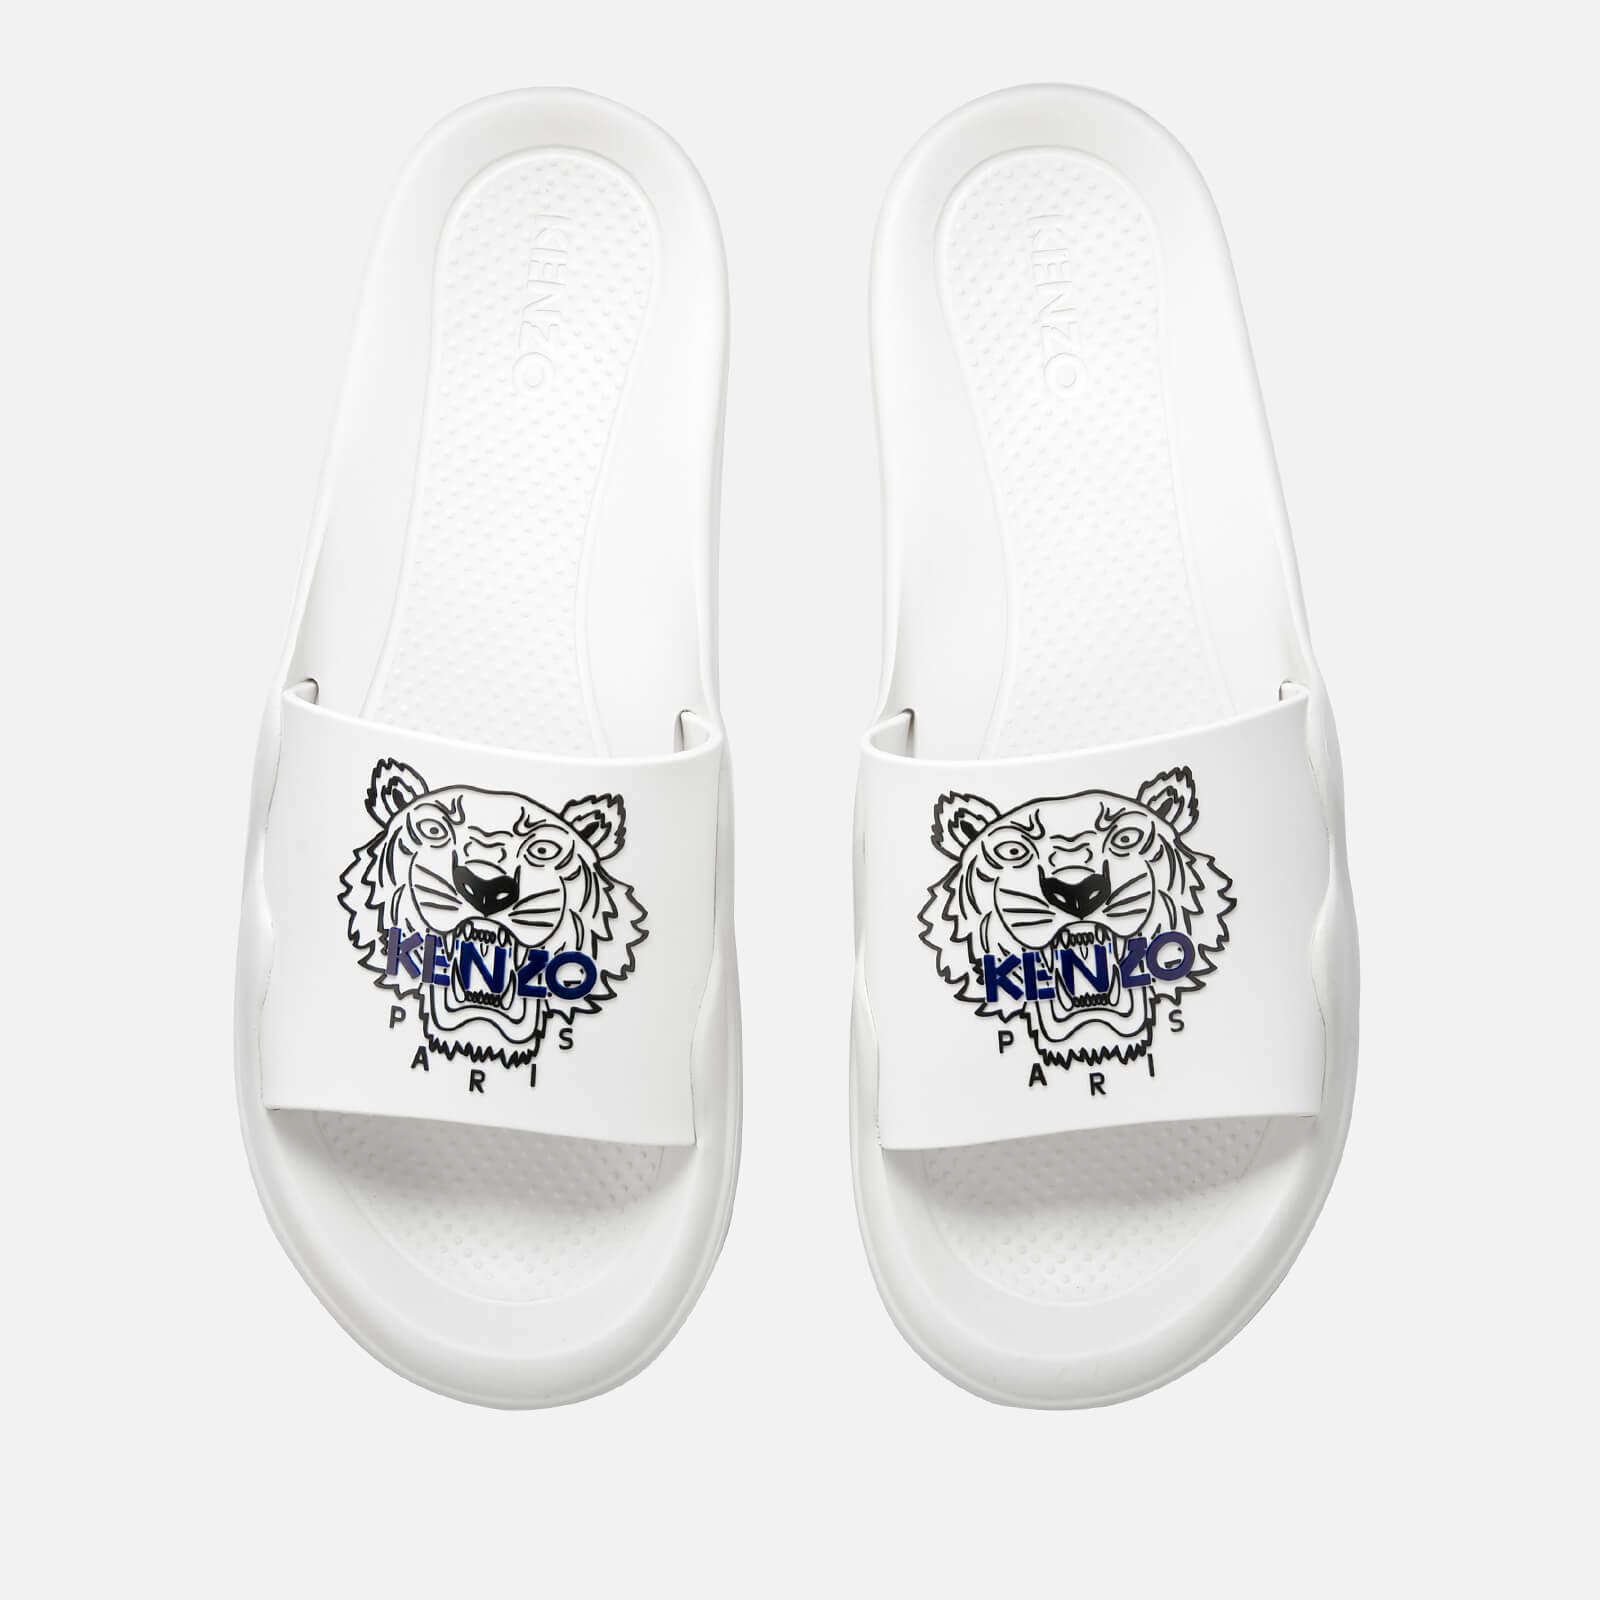 Slide Sandals Pool White Men's Kenzo eWxodCBr